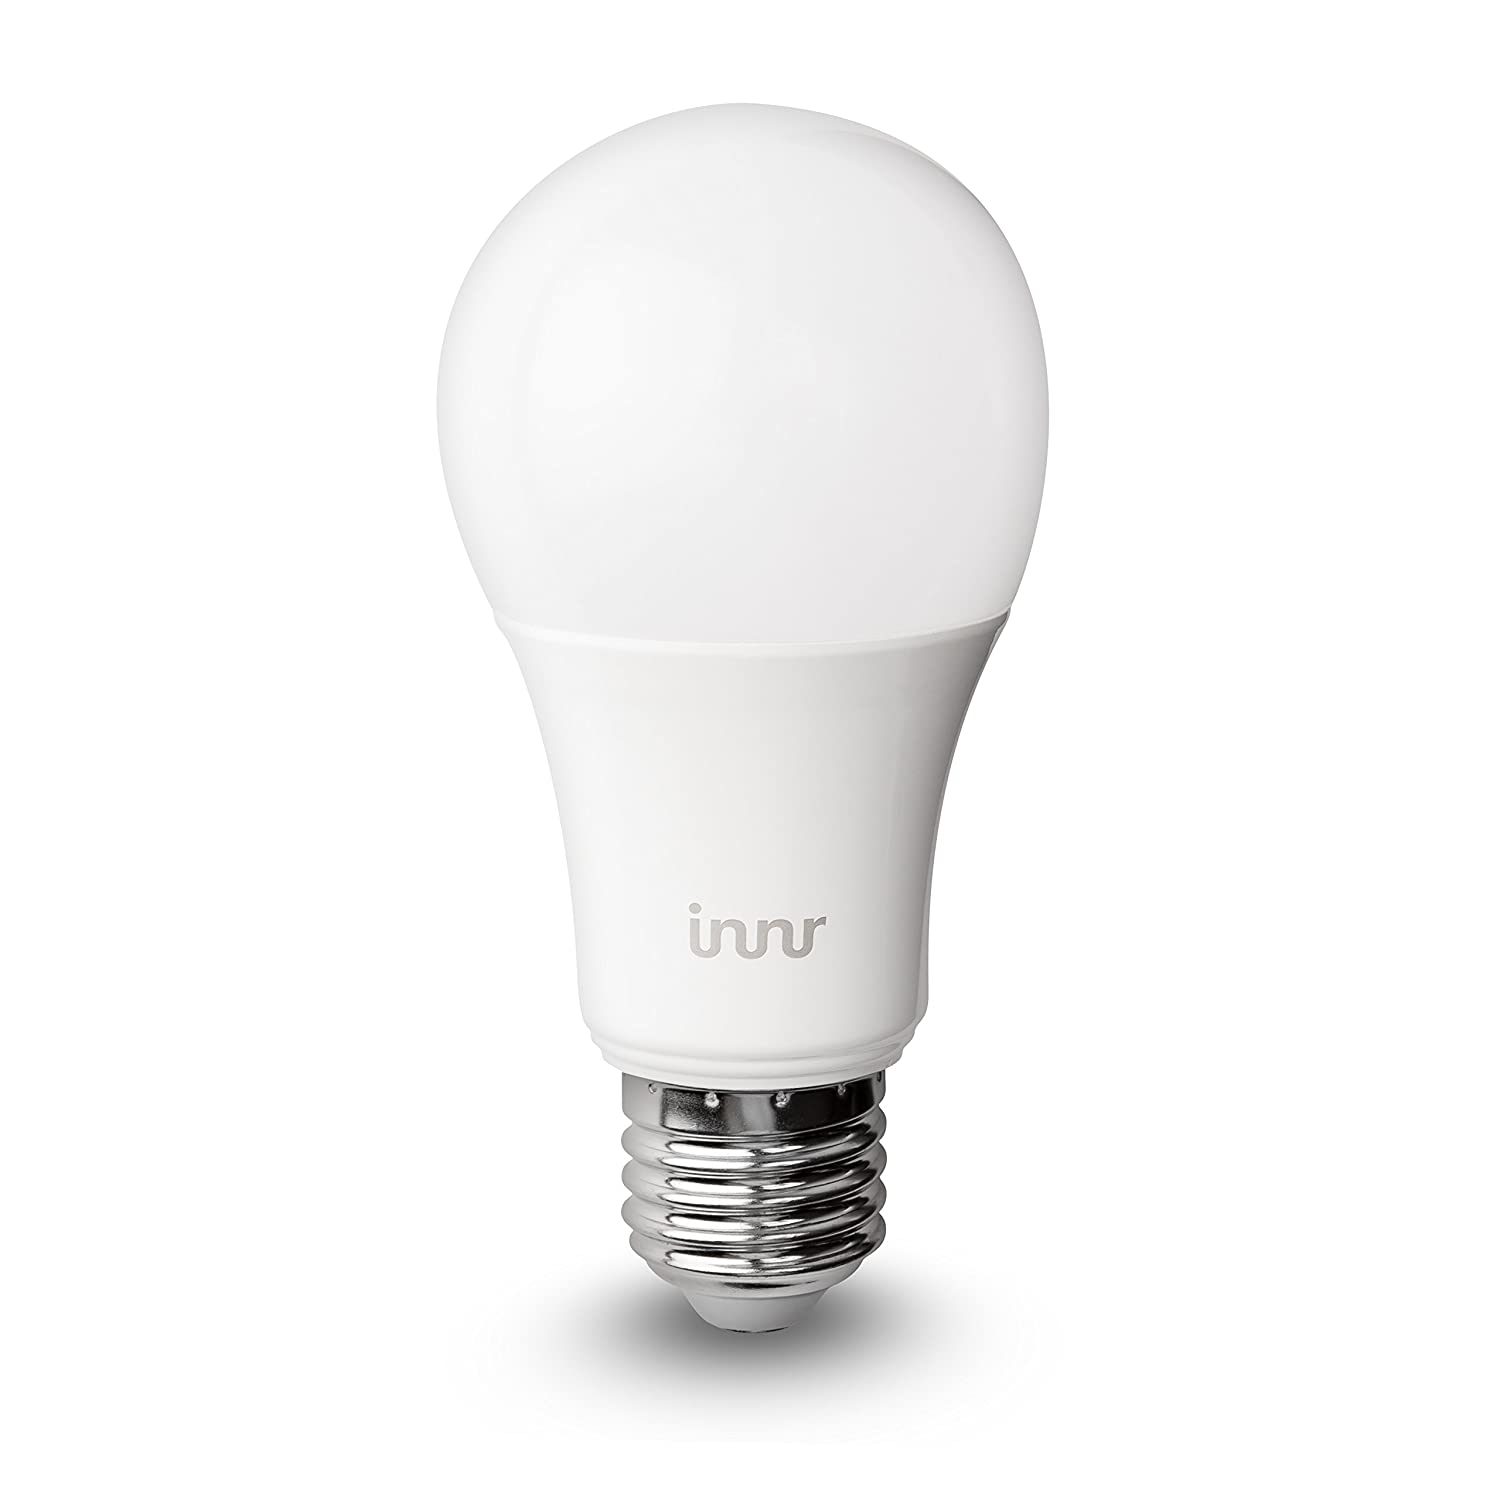 Innr E27 Smart LED Lampe, Color, dimmbar, RGBW, kompatibel mit Echo ...